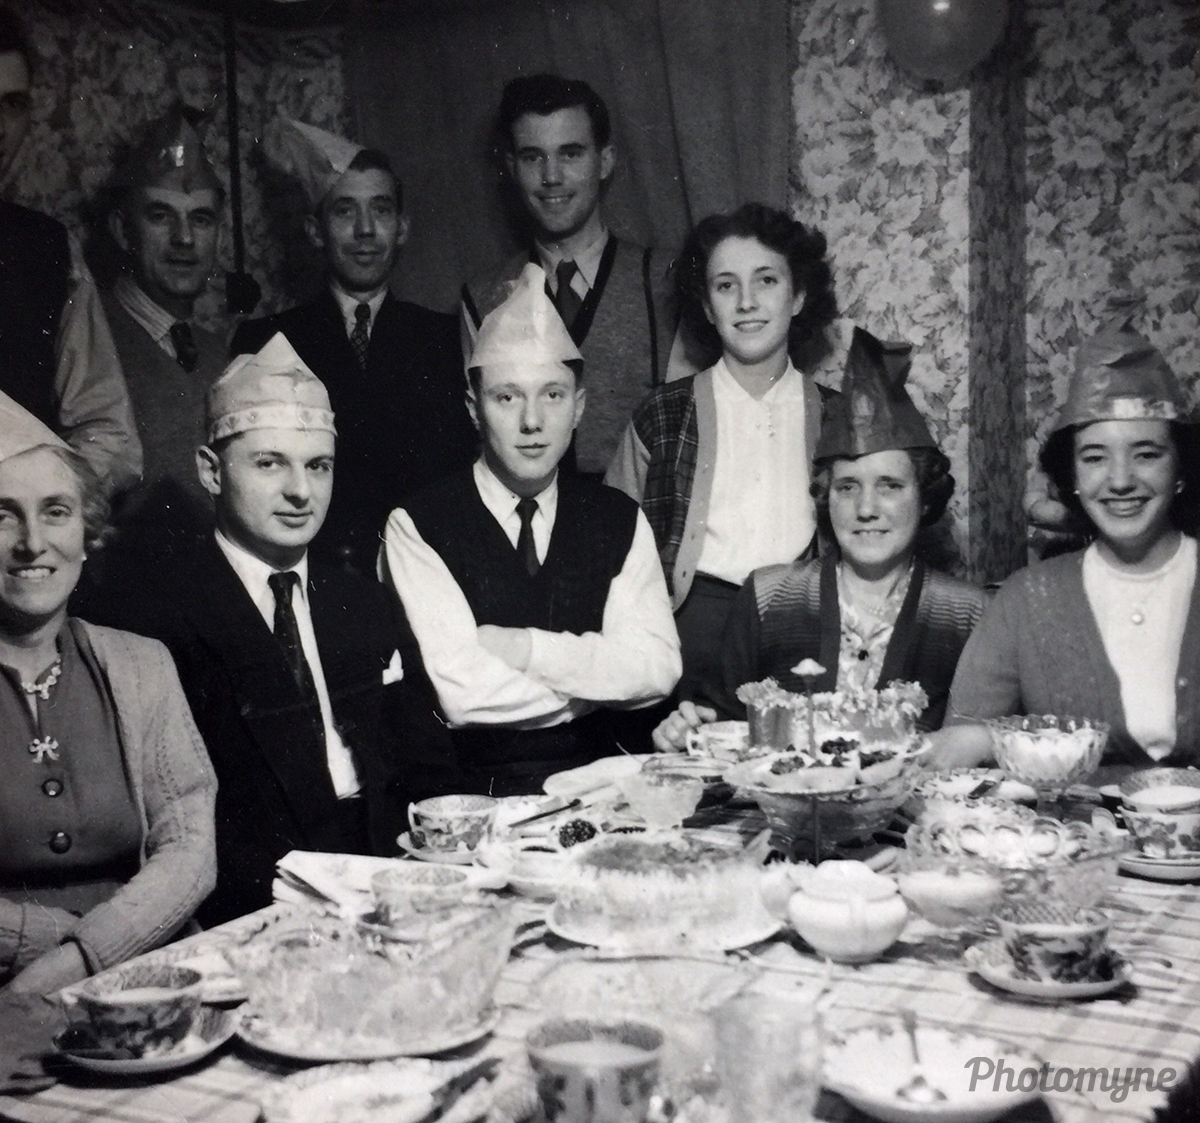 Family Christmas. London, UK 1950